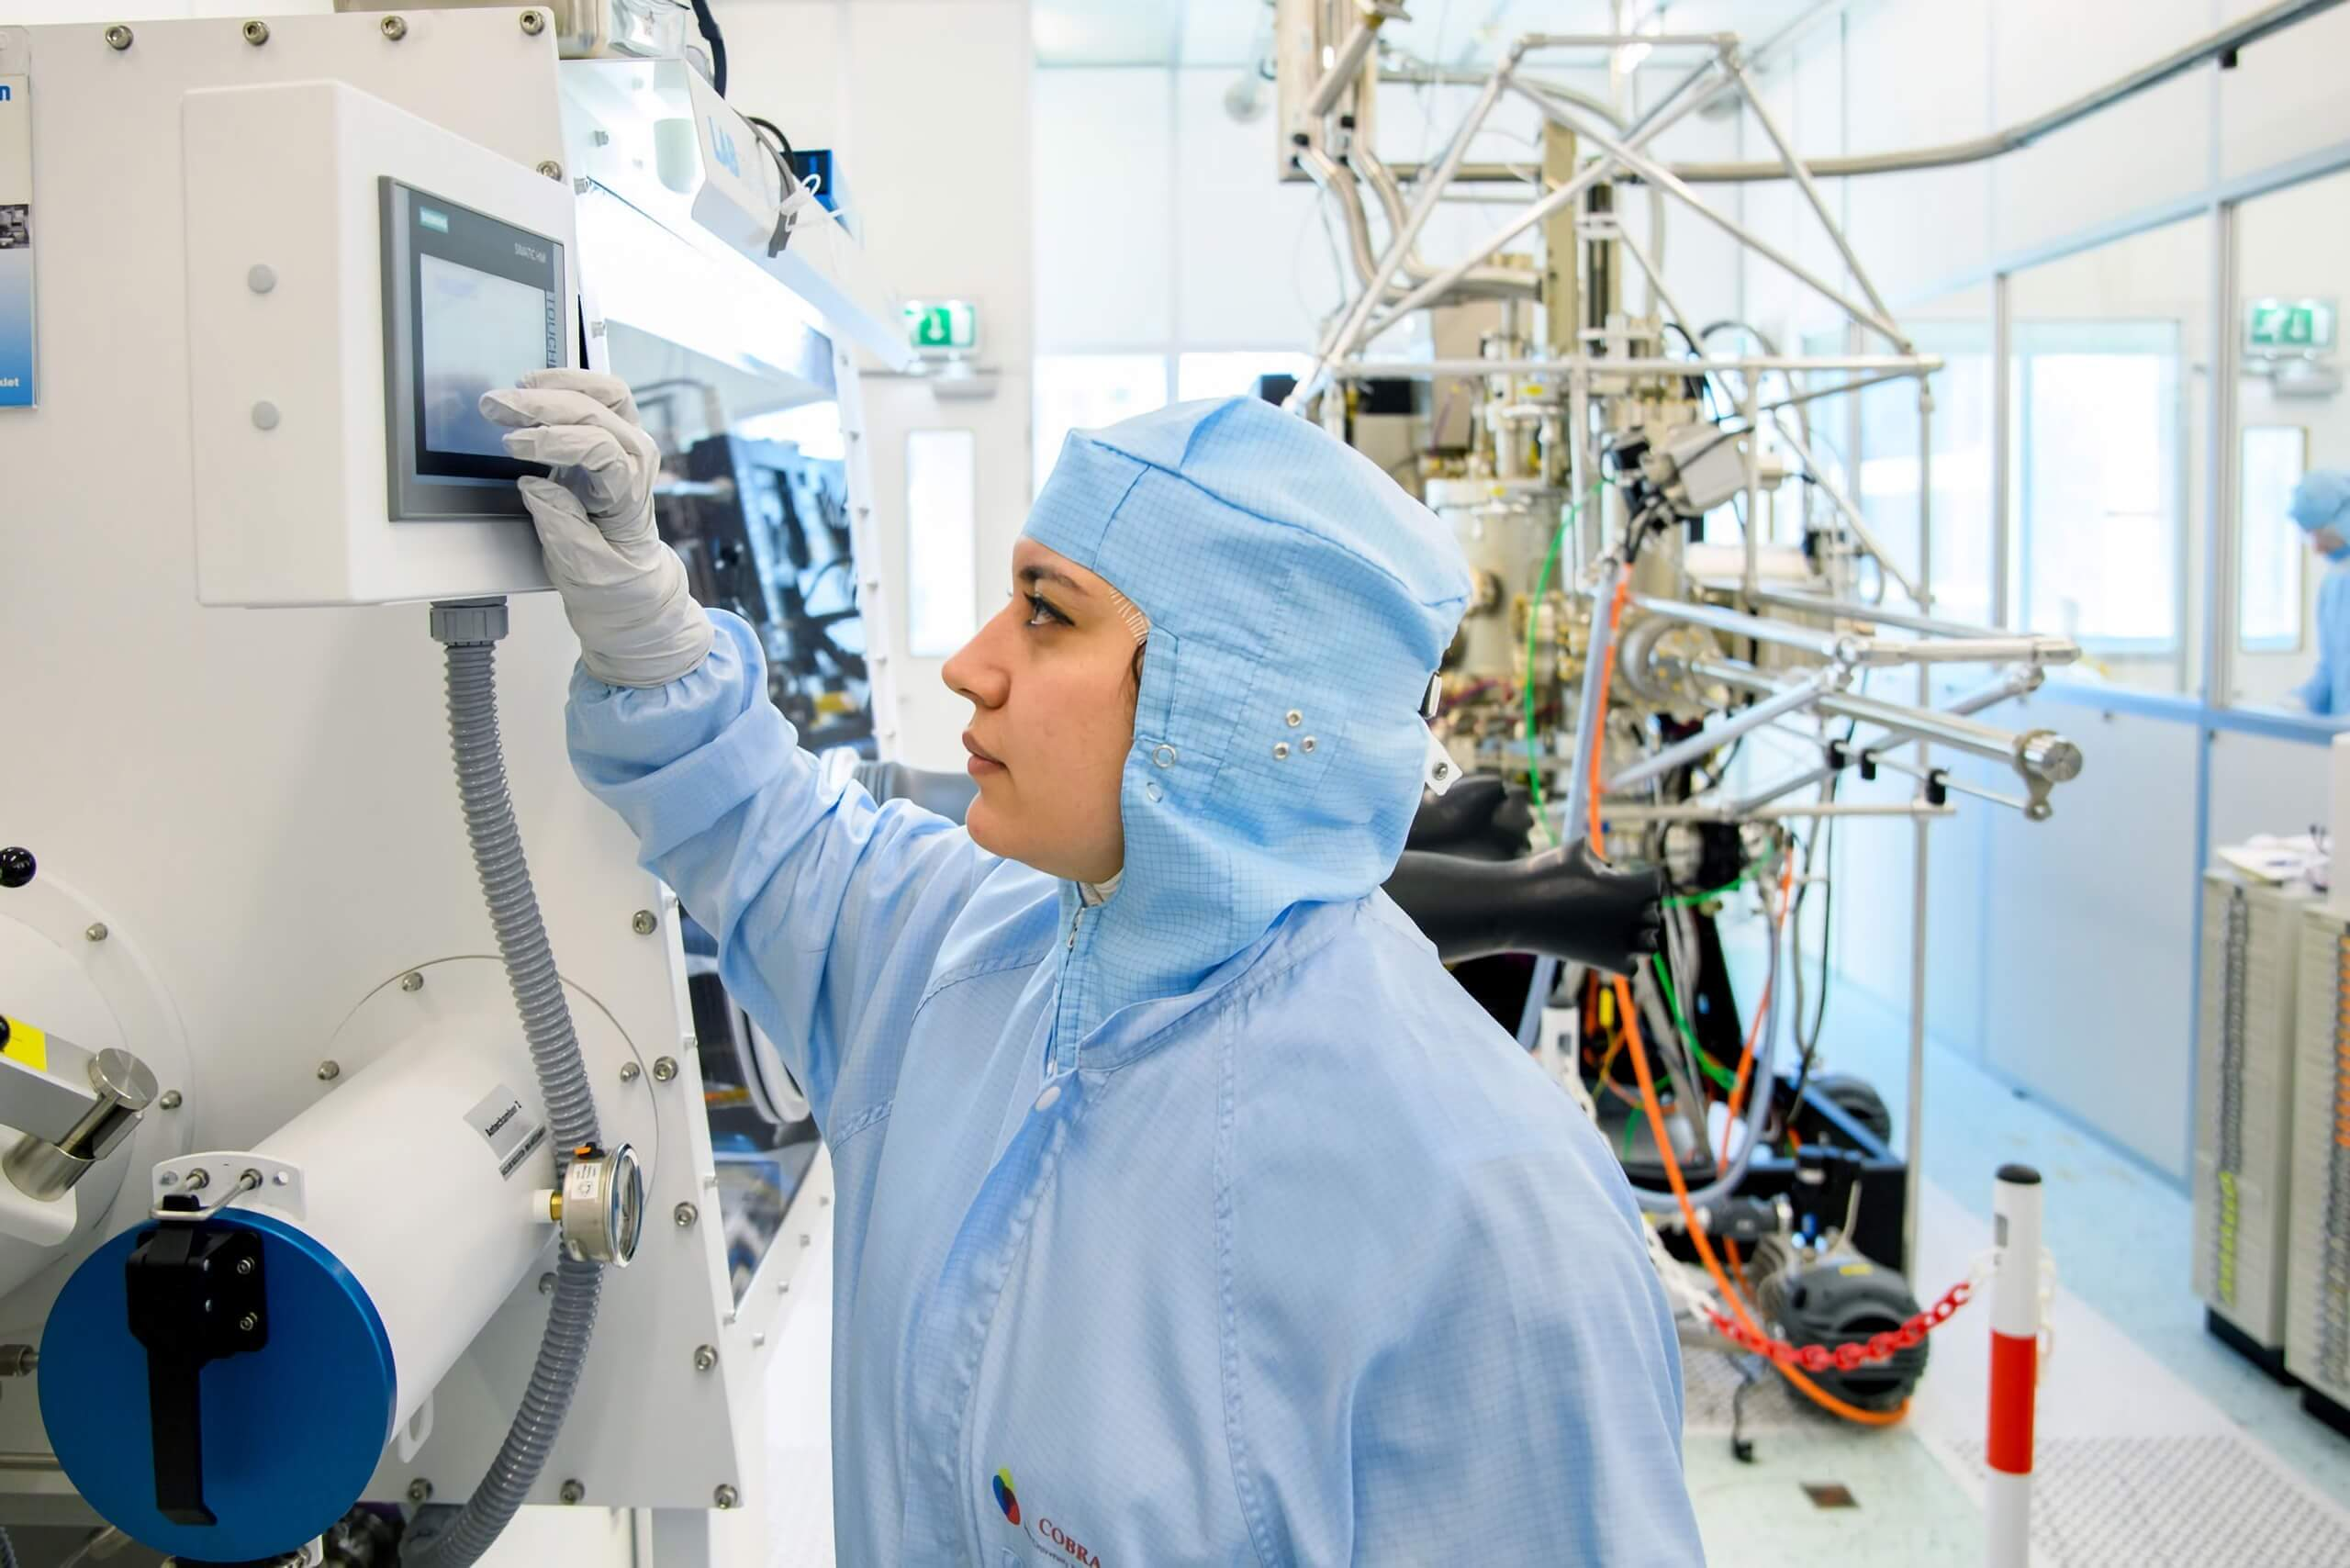 Researchers at Eindhoven have finally developed photonic silicon